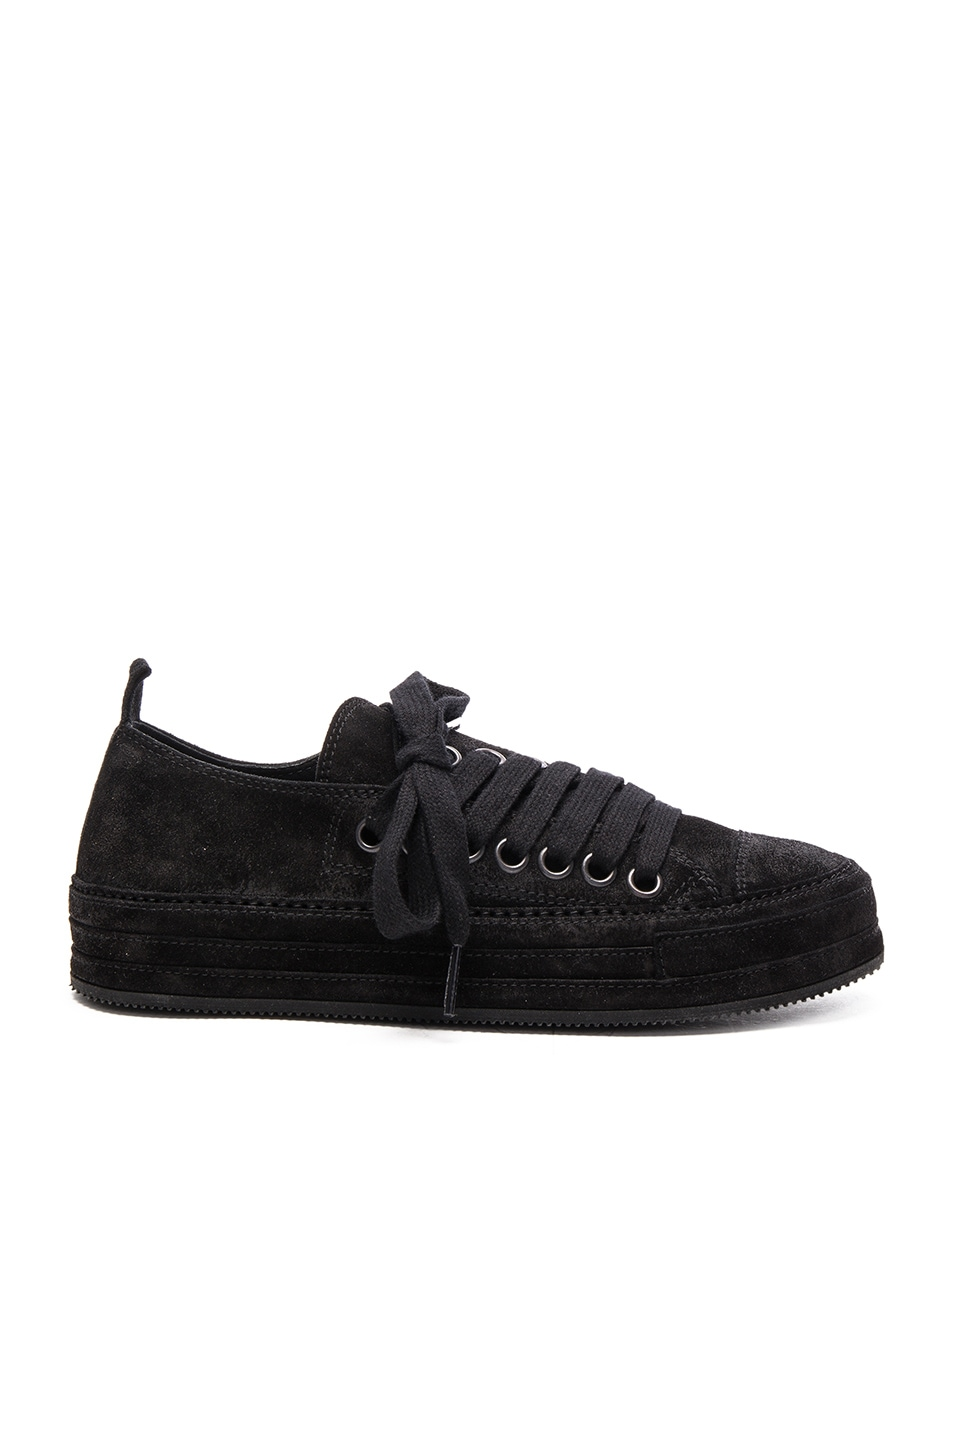 Image 1 of Ann Demeulemeester Suede Sneakers in Black